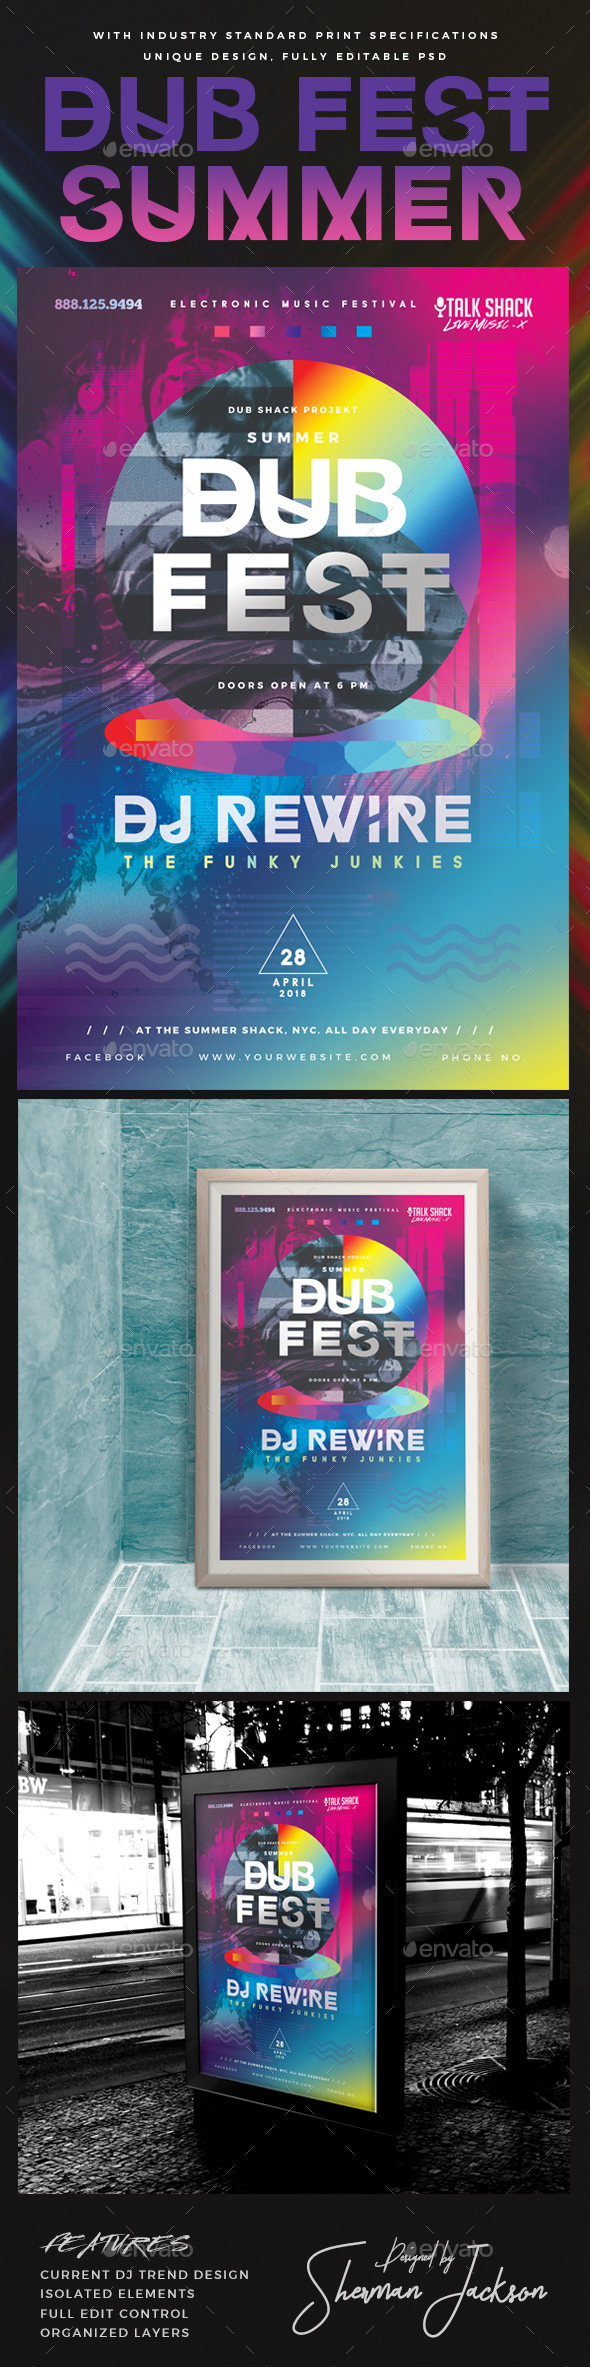 Dub Fest Summer Experimental Poster - Clubs & Parties Events